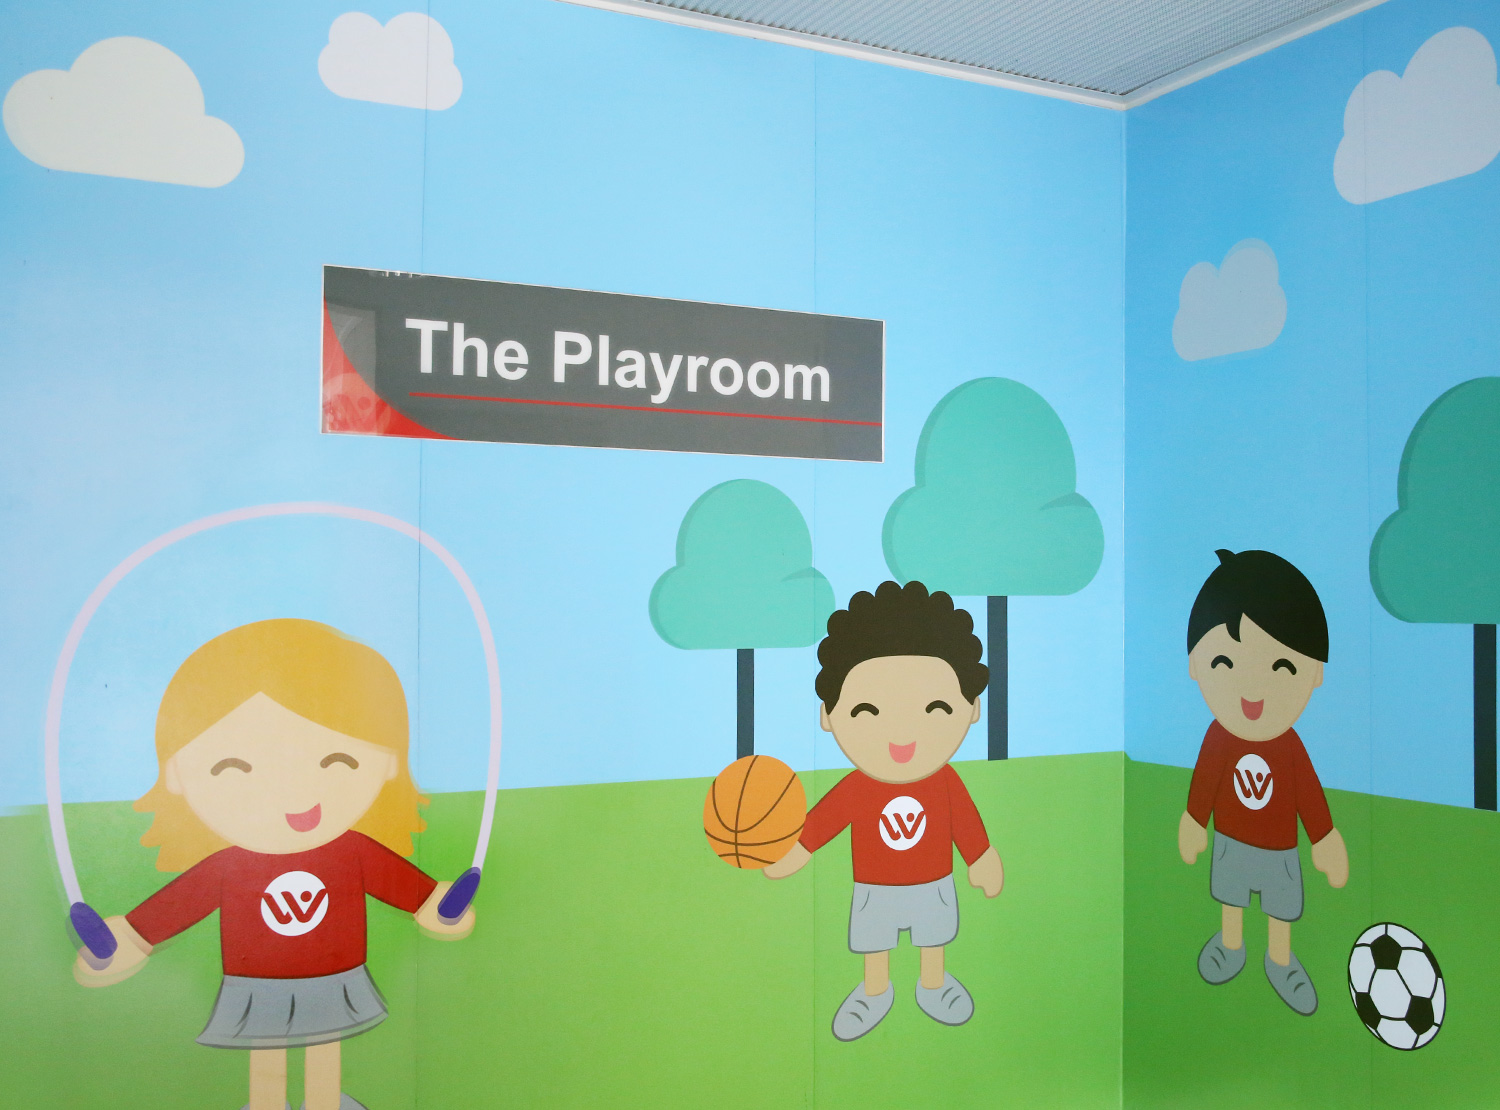 Vinyl Design for the Playroom